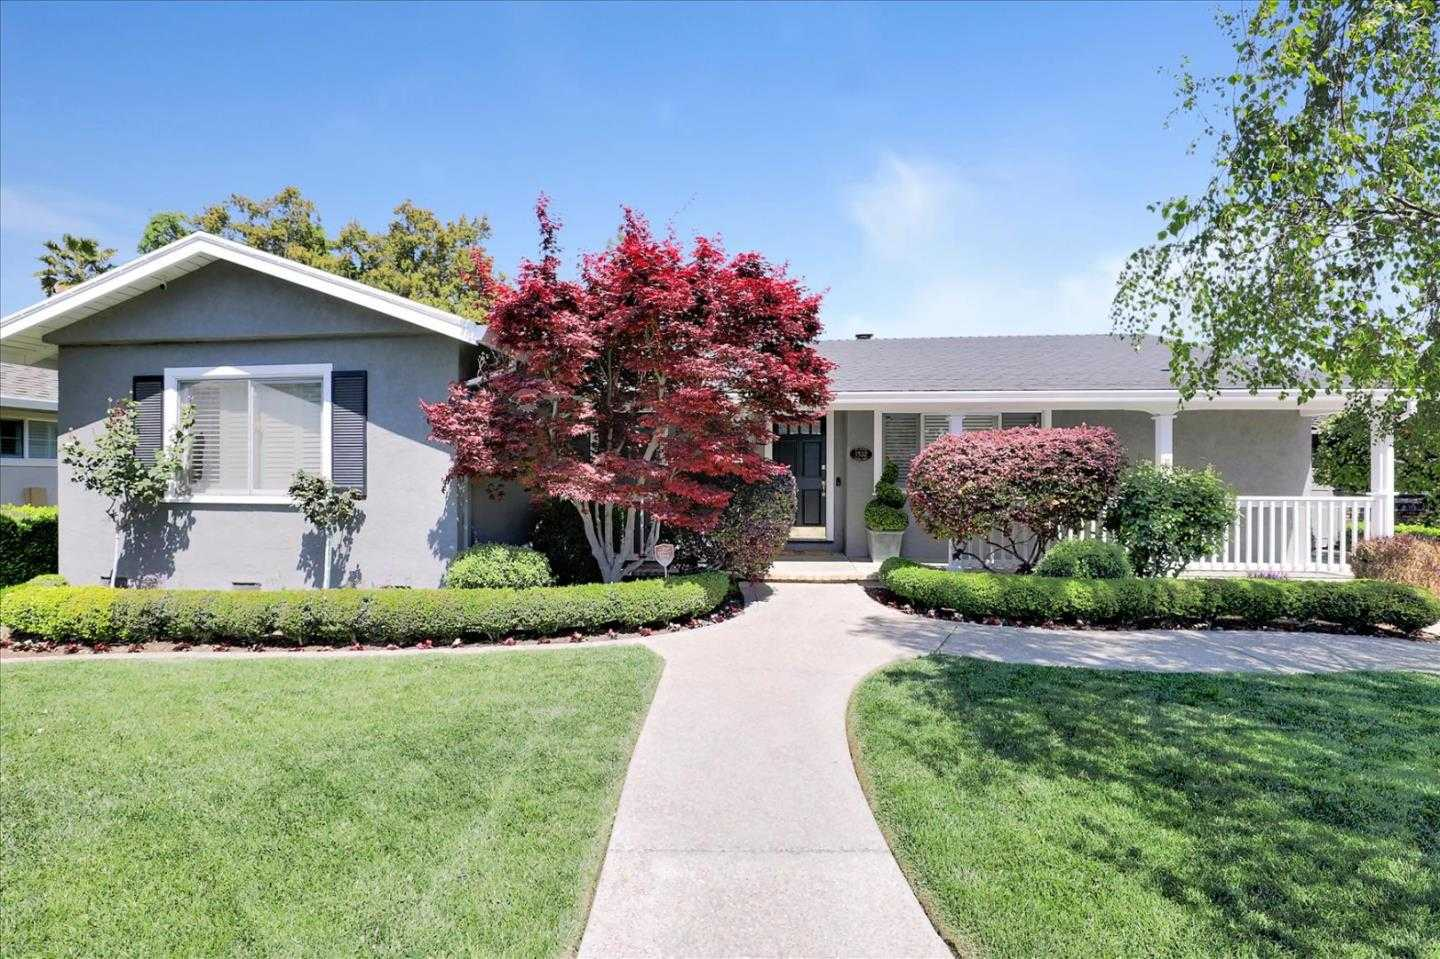 $1,999,950 - 4Br/3Ba -  for Sale in San Jose